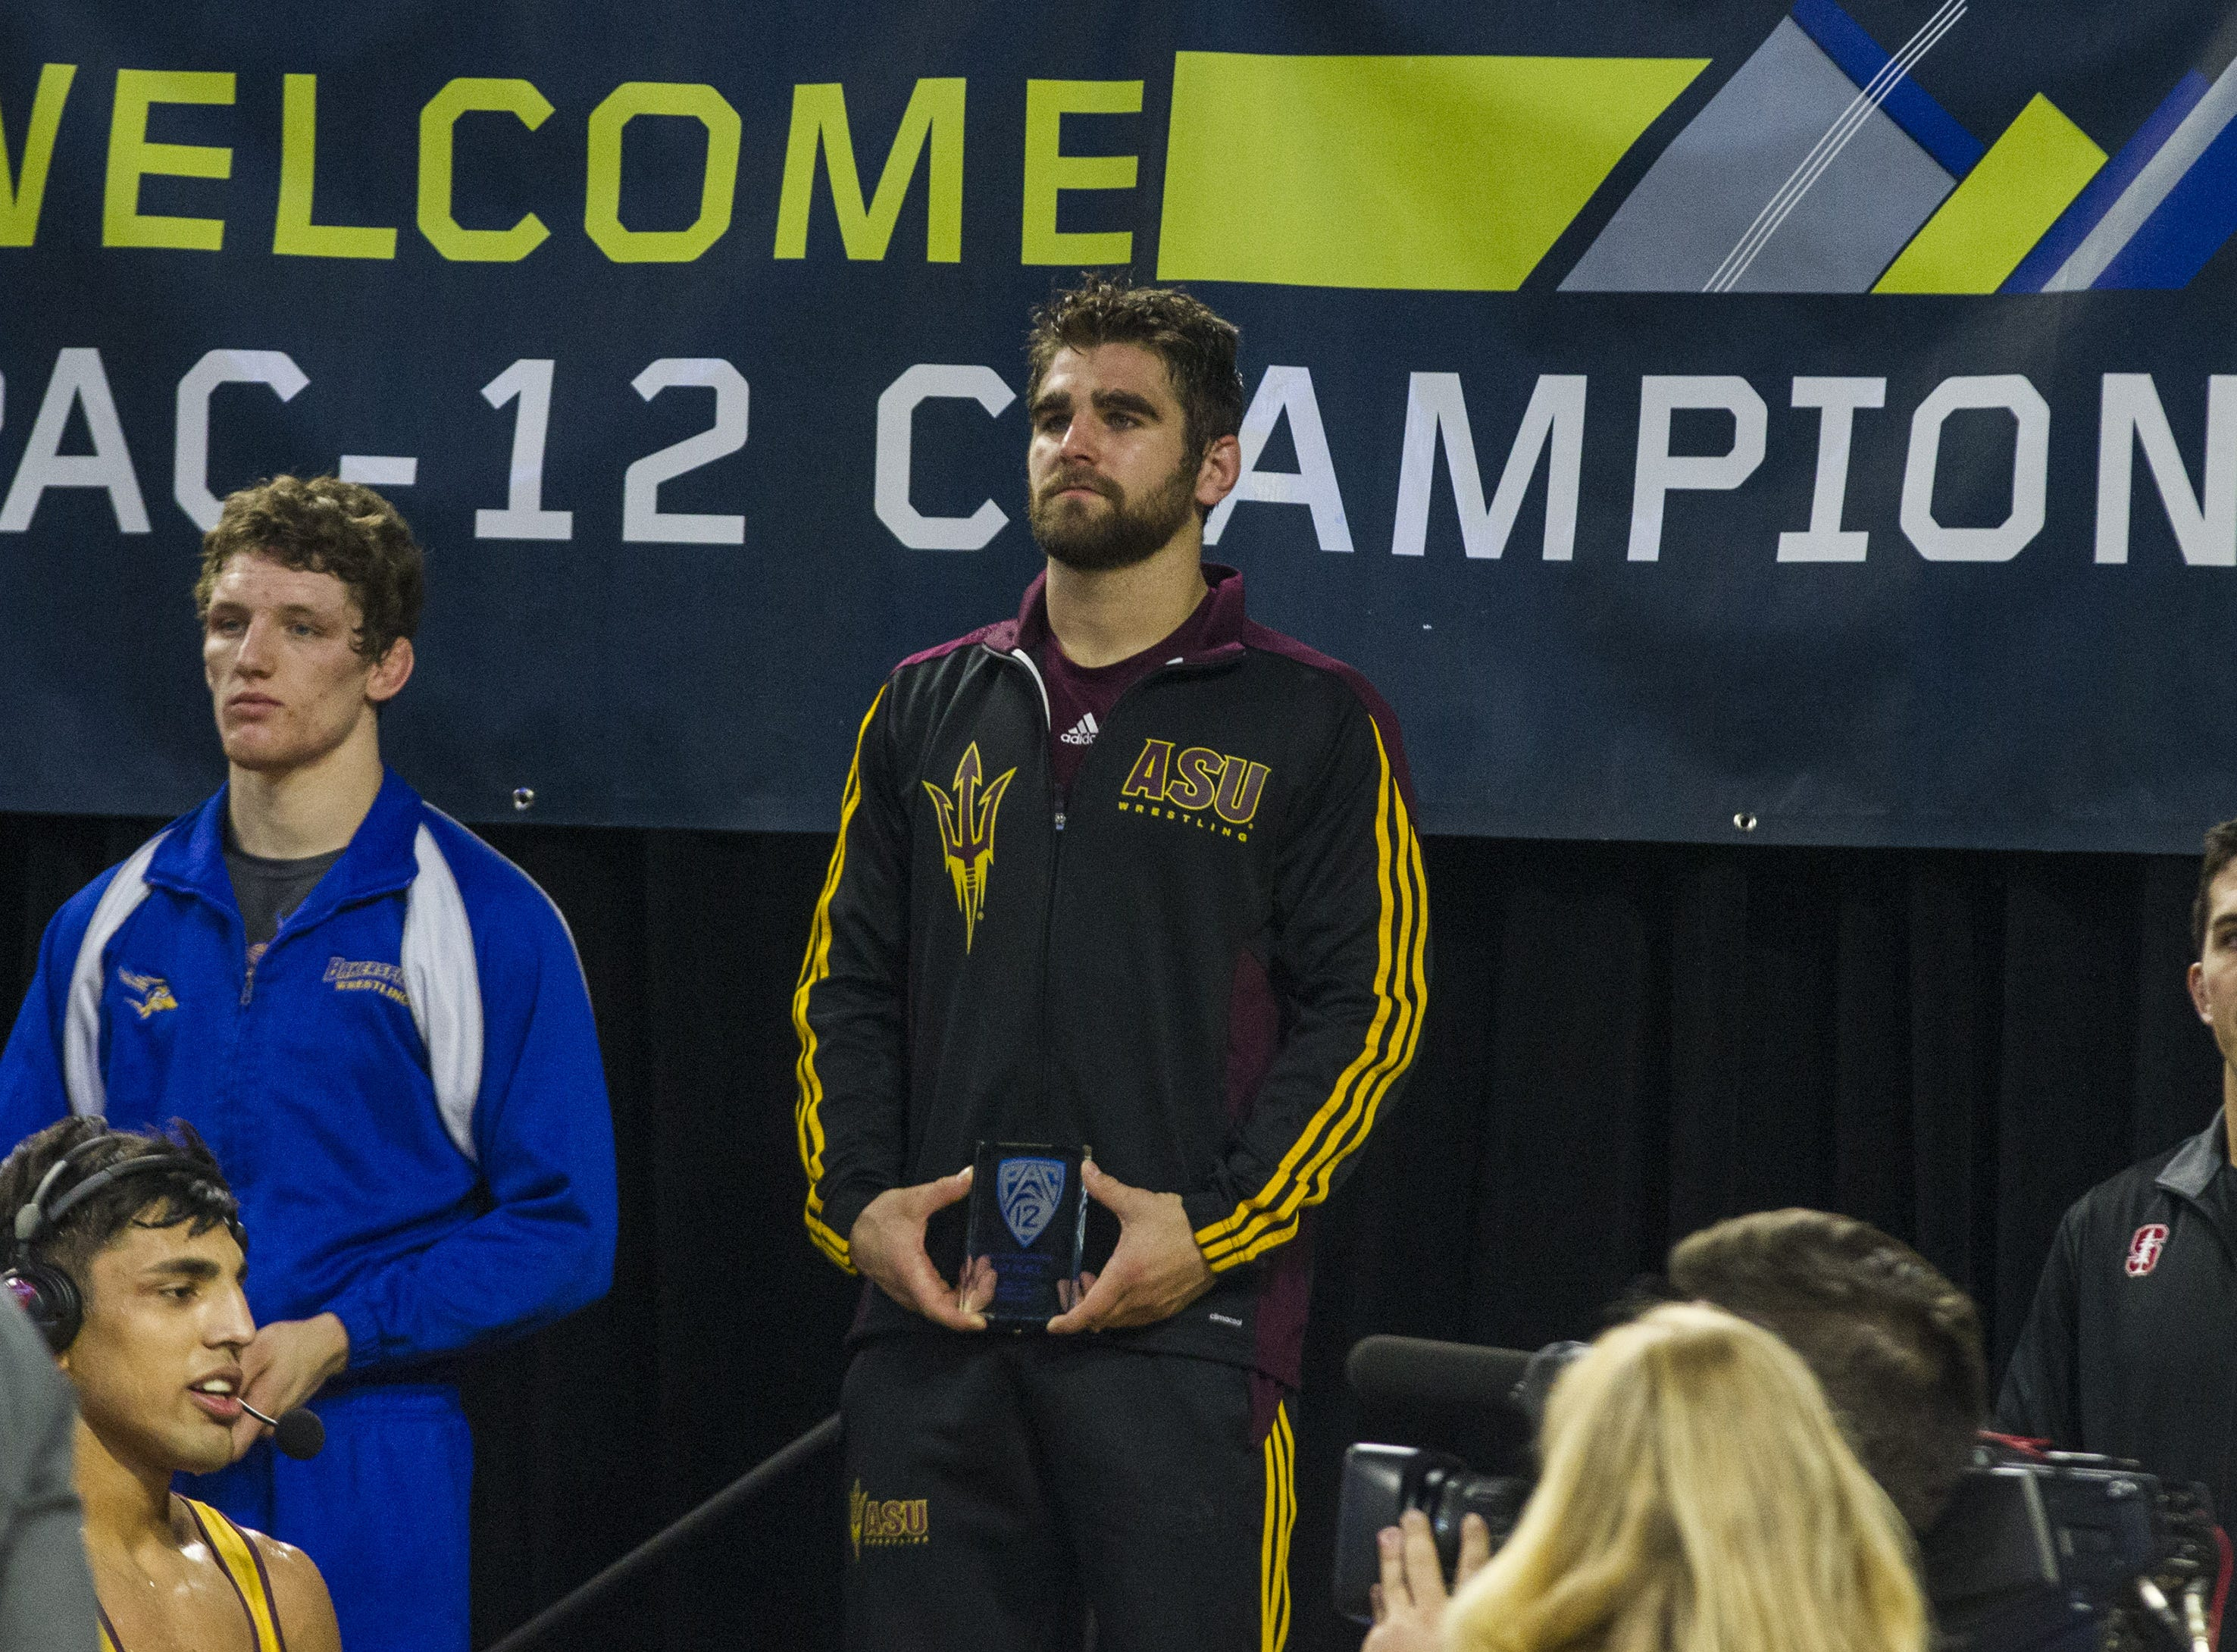 ASU's Josh Shields receives his trophy for his win over CSU Bakersfield's Jacob Thalin in the 165 pound weight class during the Pac 12 Wrestling Championship at Wells Fargo Arena in Tempe on March 9, 2019.